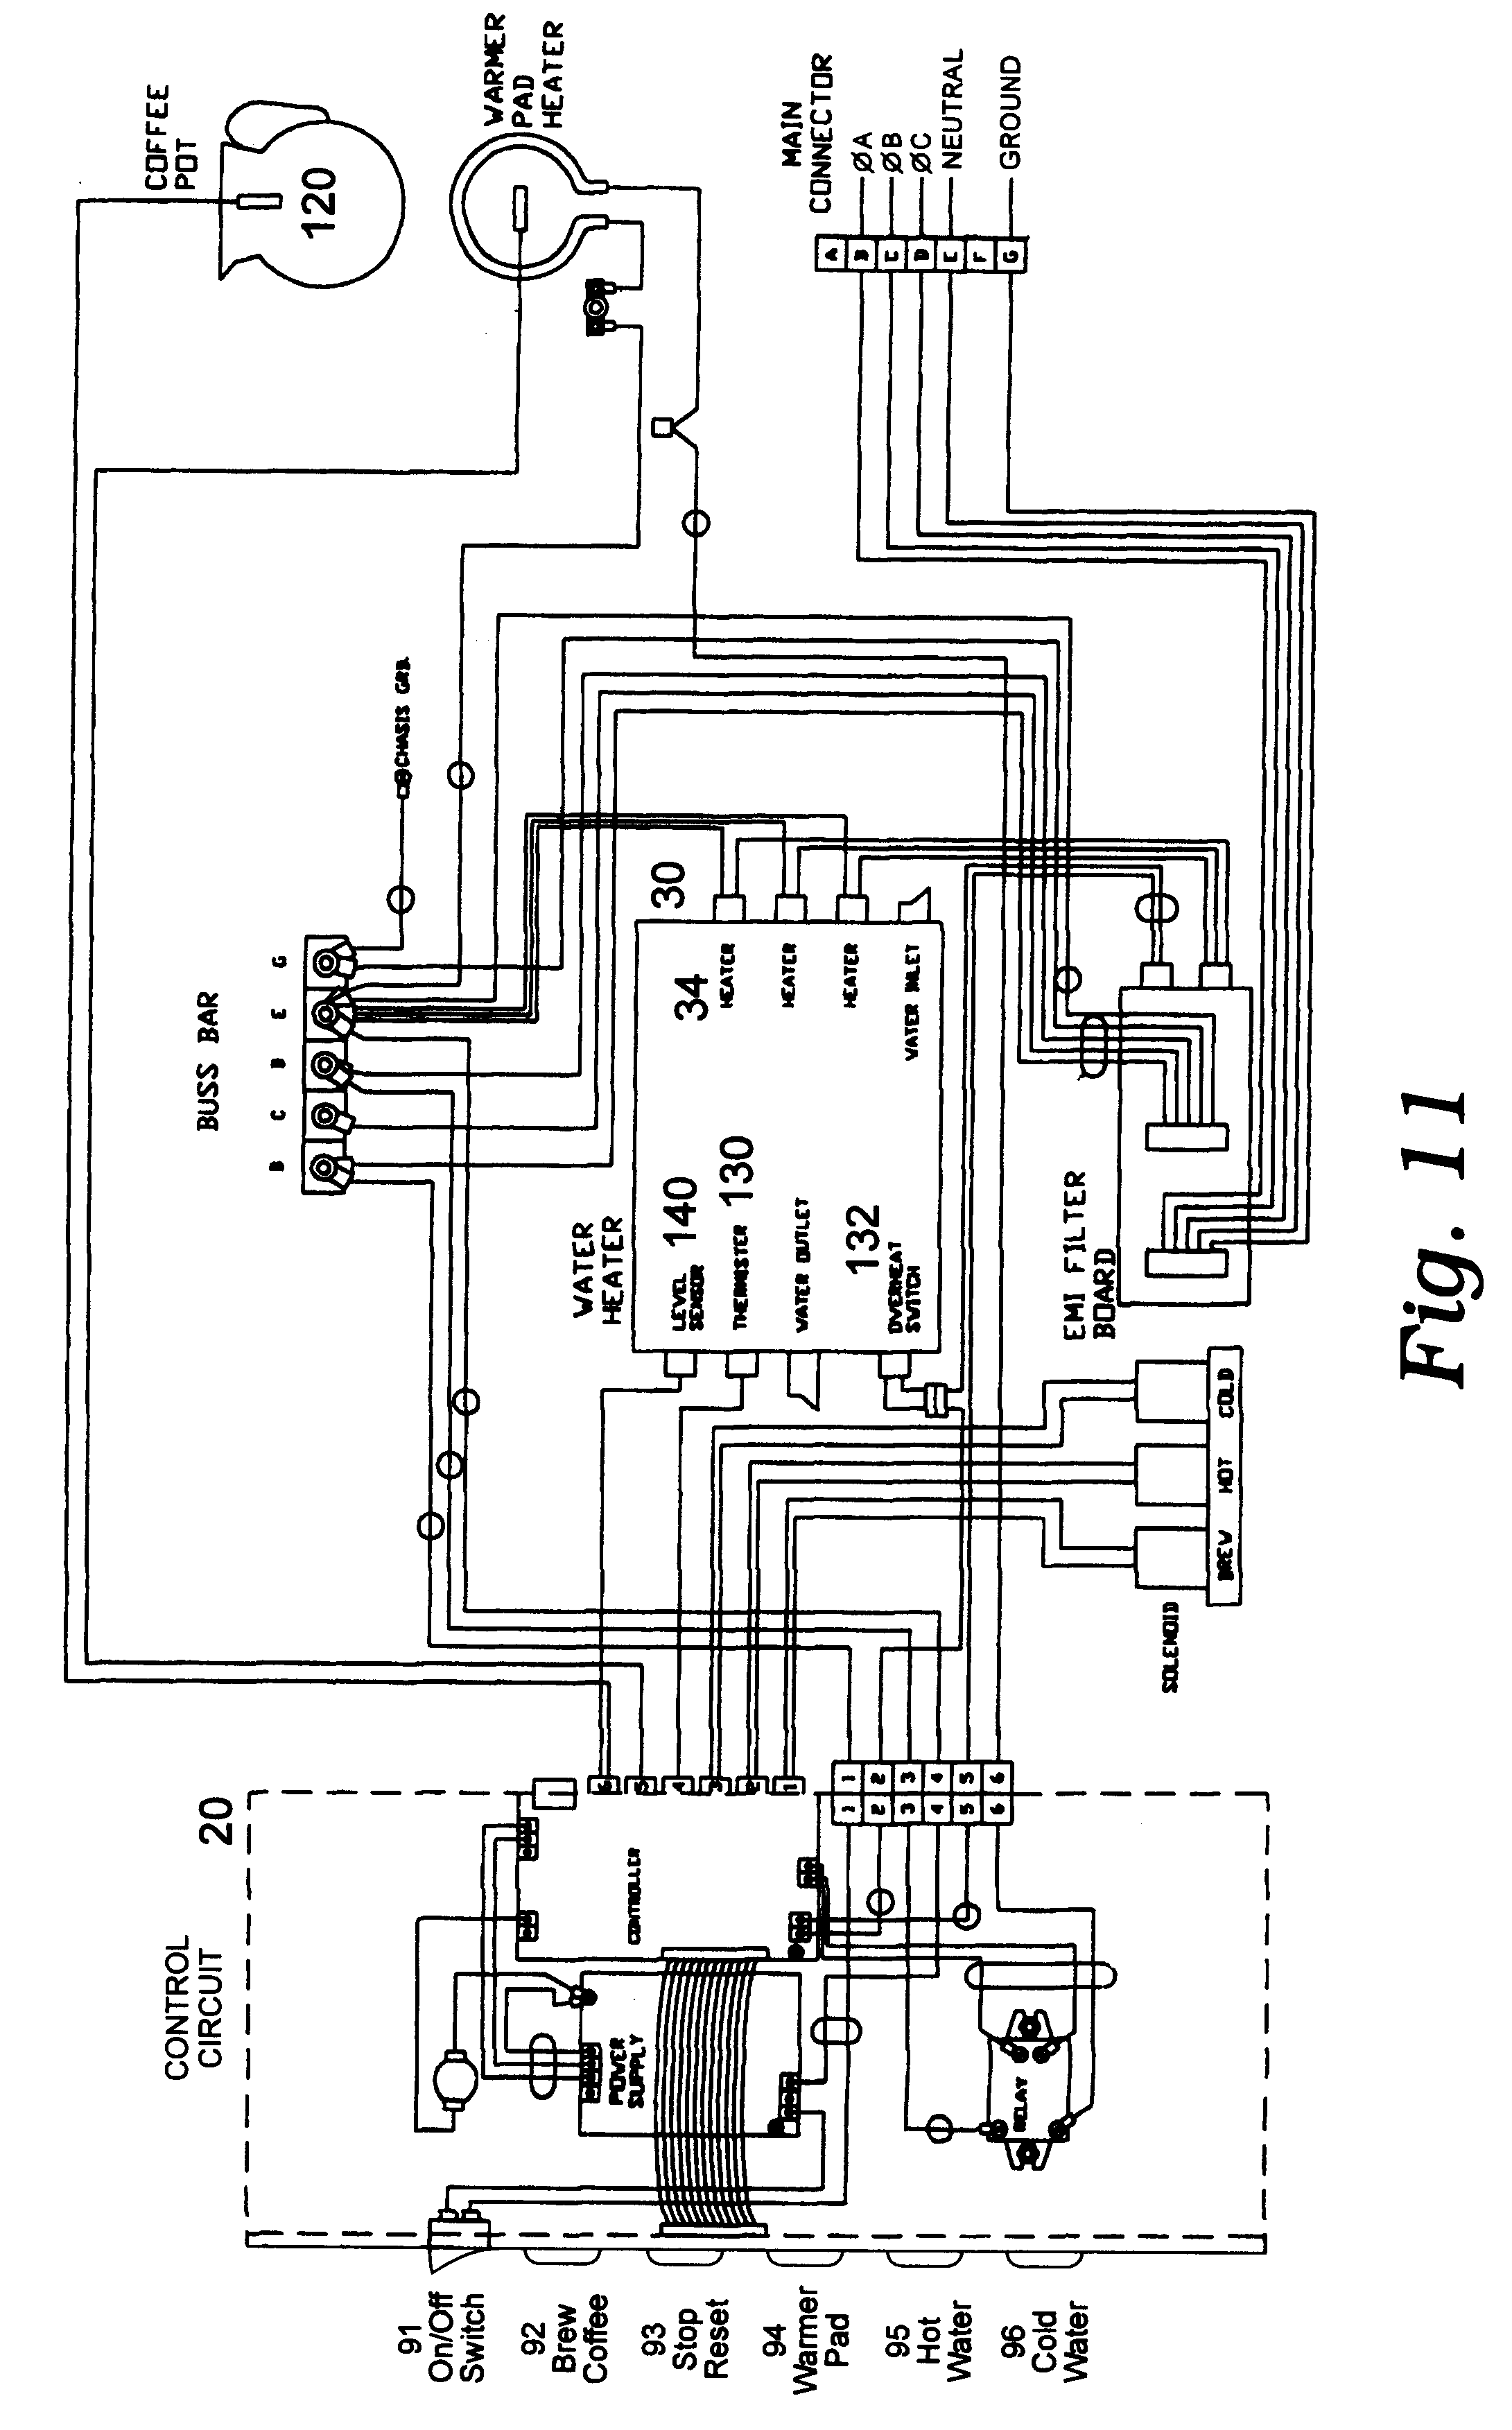 wiring diagram for a bunn coffee maker  u2013 powerking co